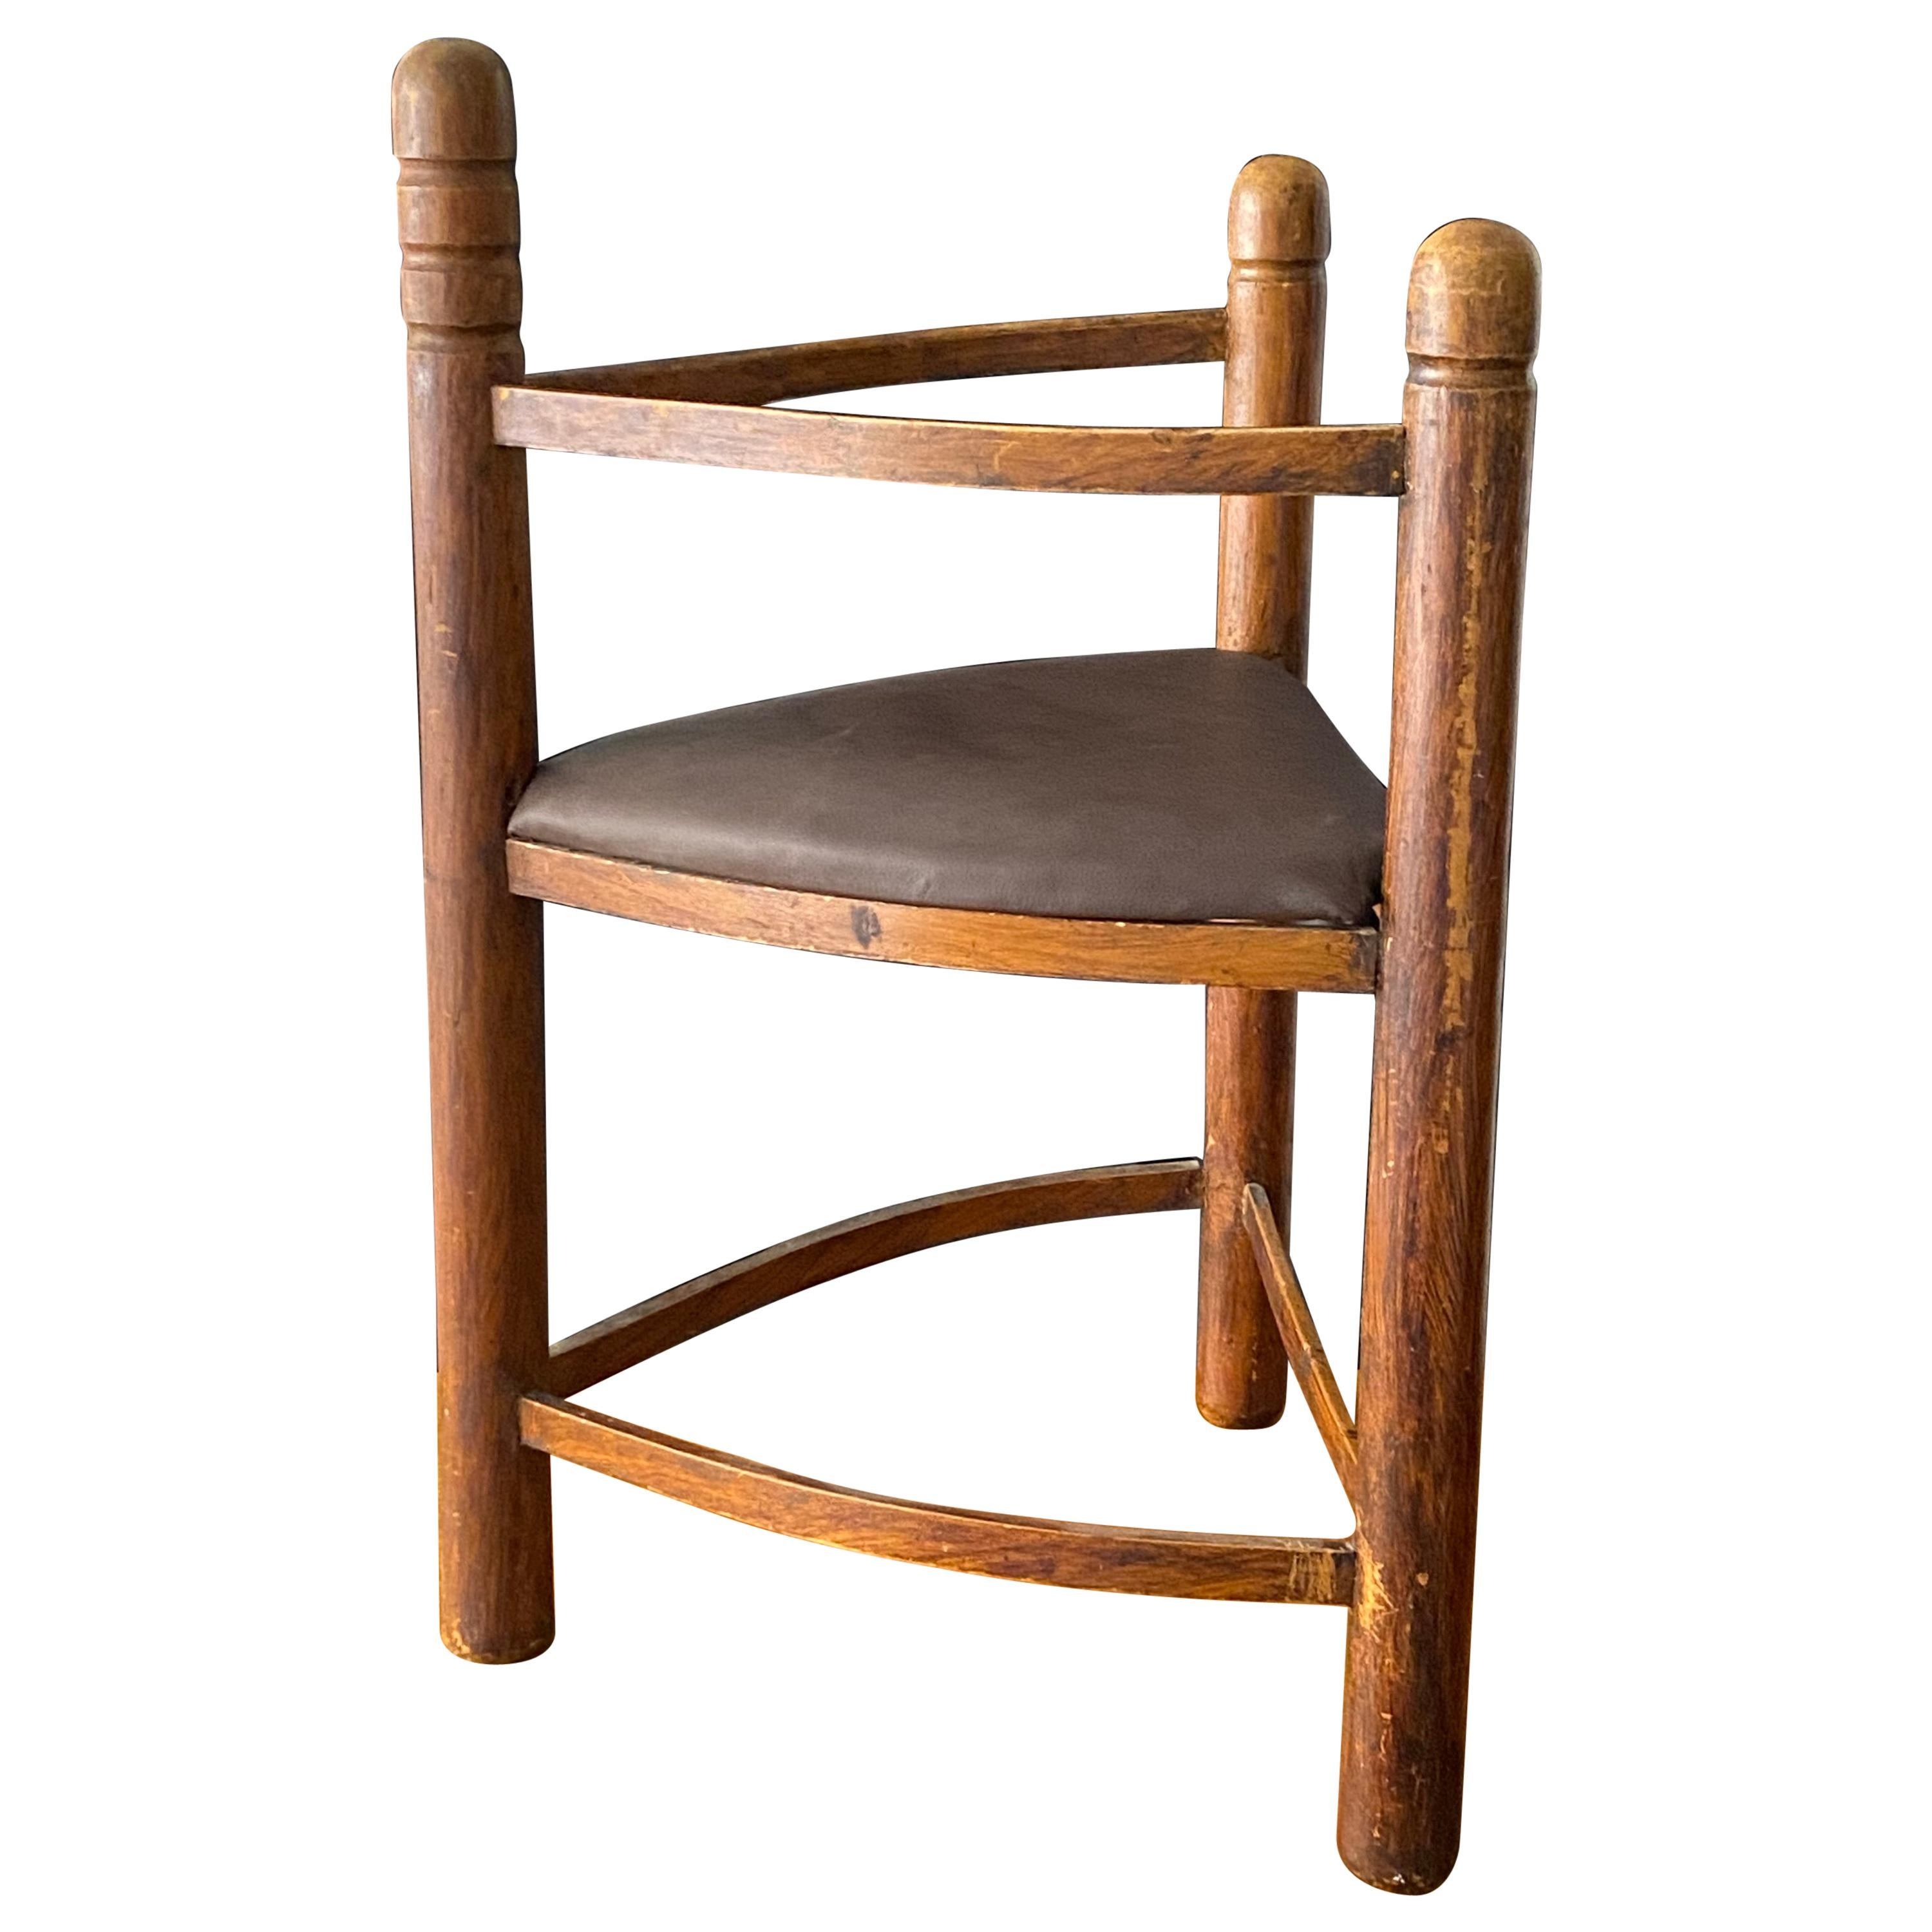 Monastery Chair, Carved and Stained Wood, Leather, Sweden, Early 20th Century